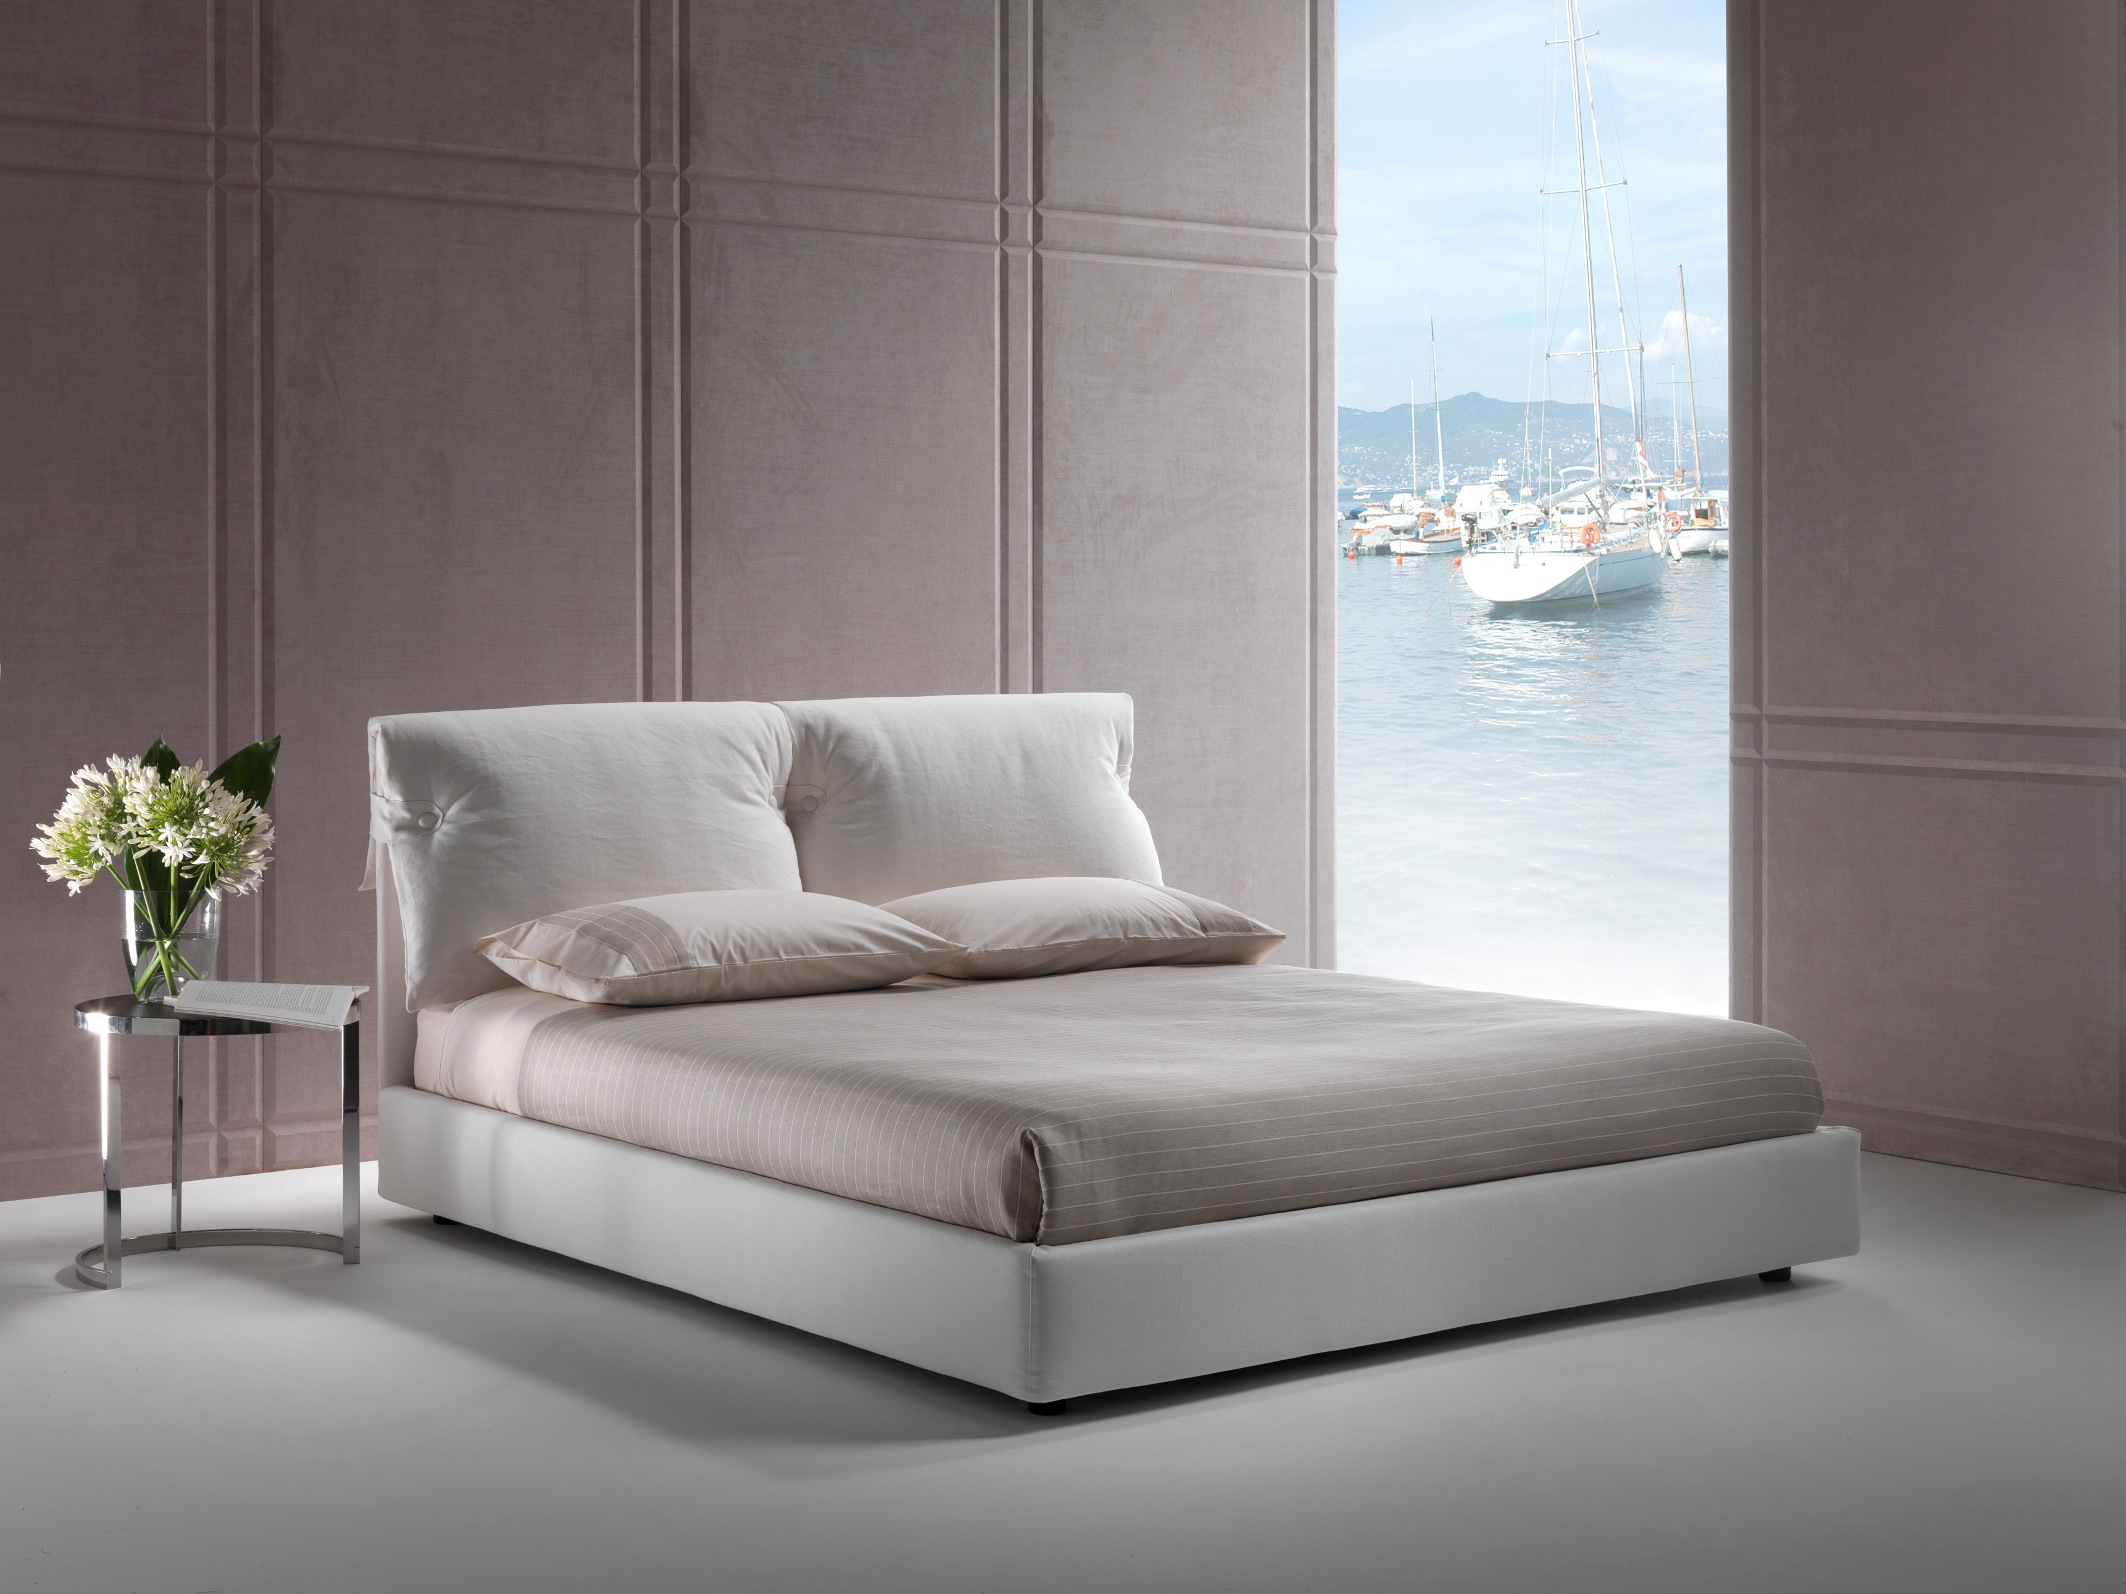 Bed storage Natalia double lift King Size, Newformsdesign | Outlet ...